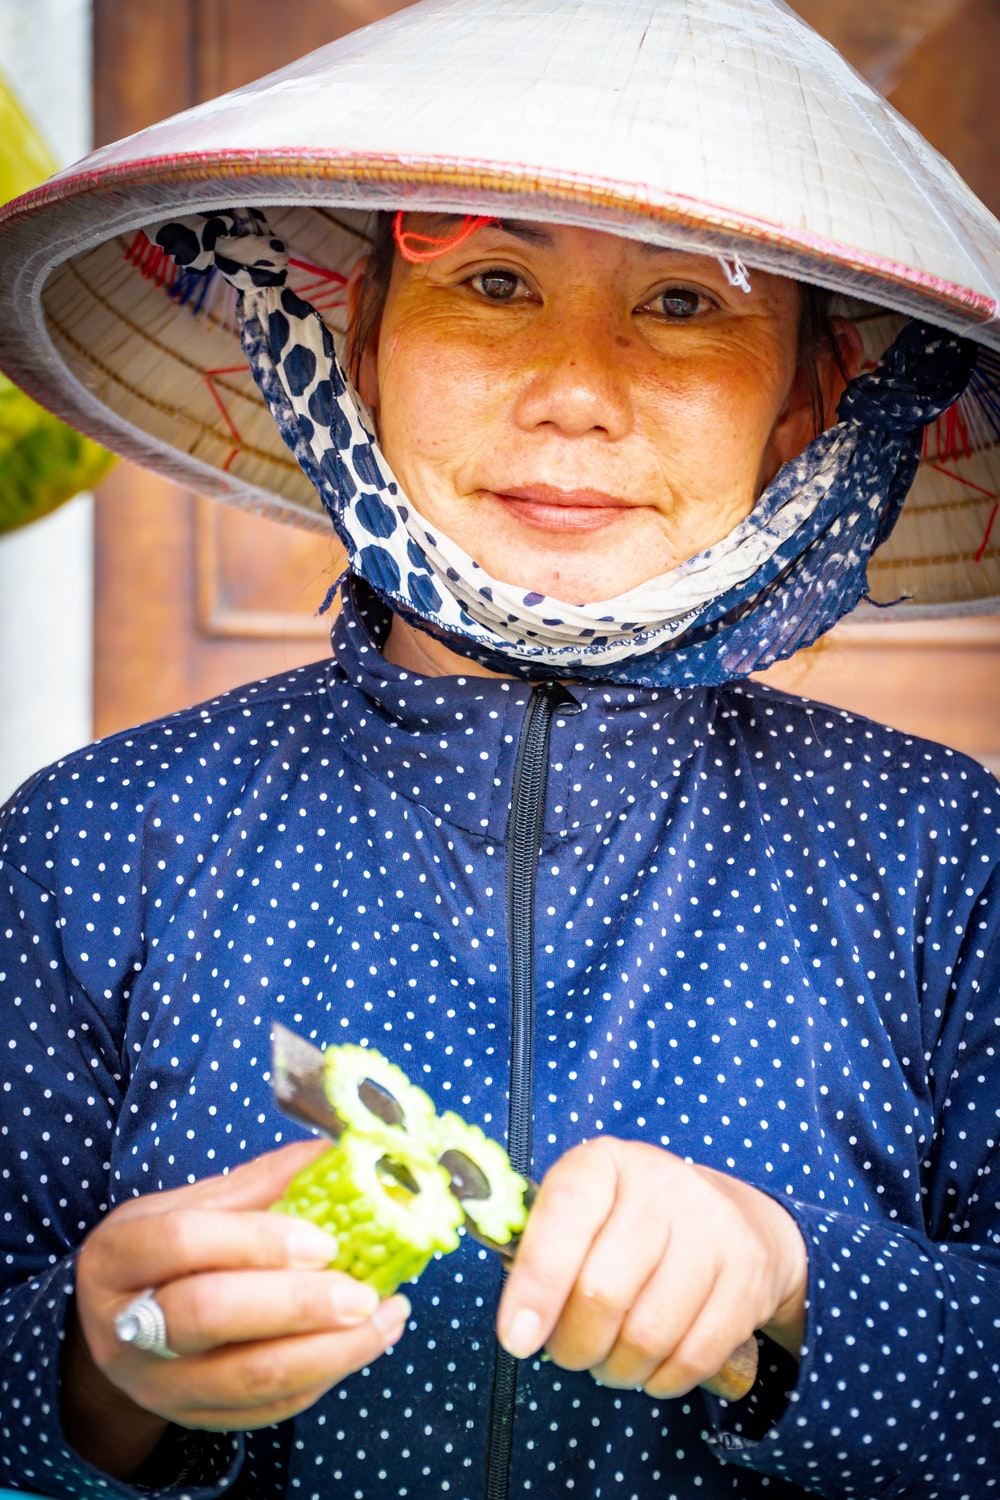 woman in white hat and blue top slicing vegetable